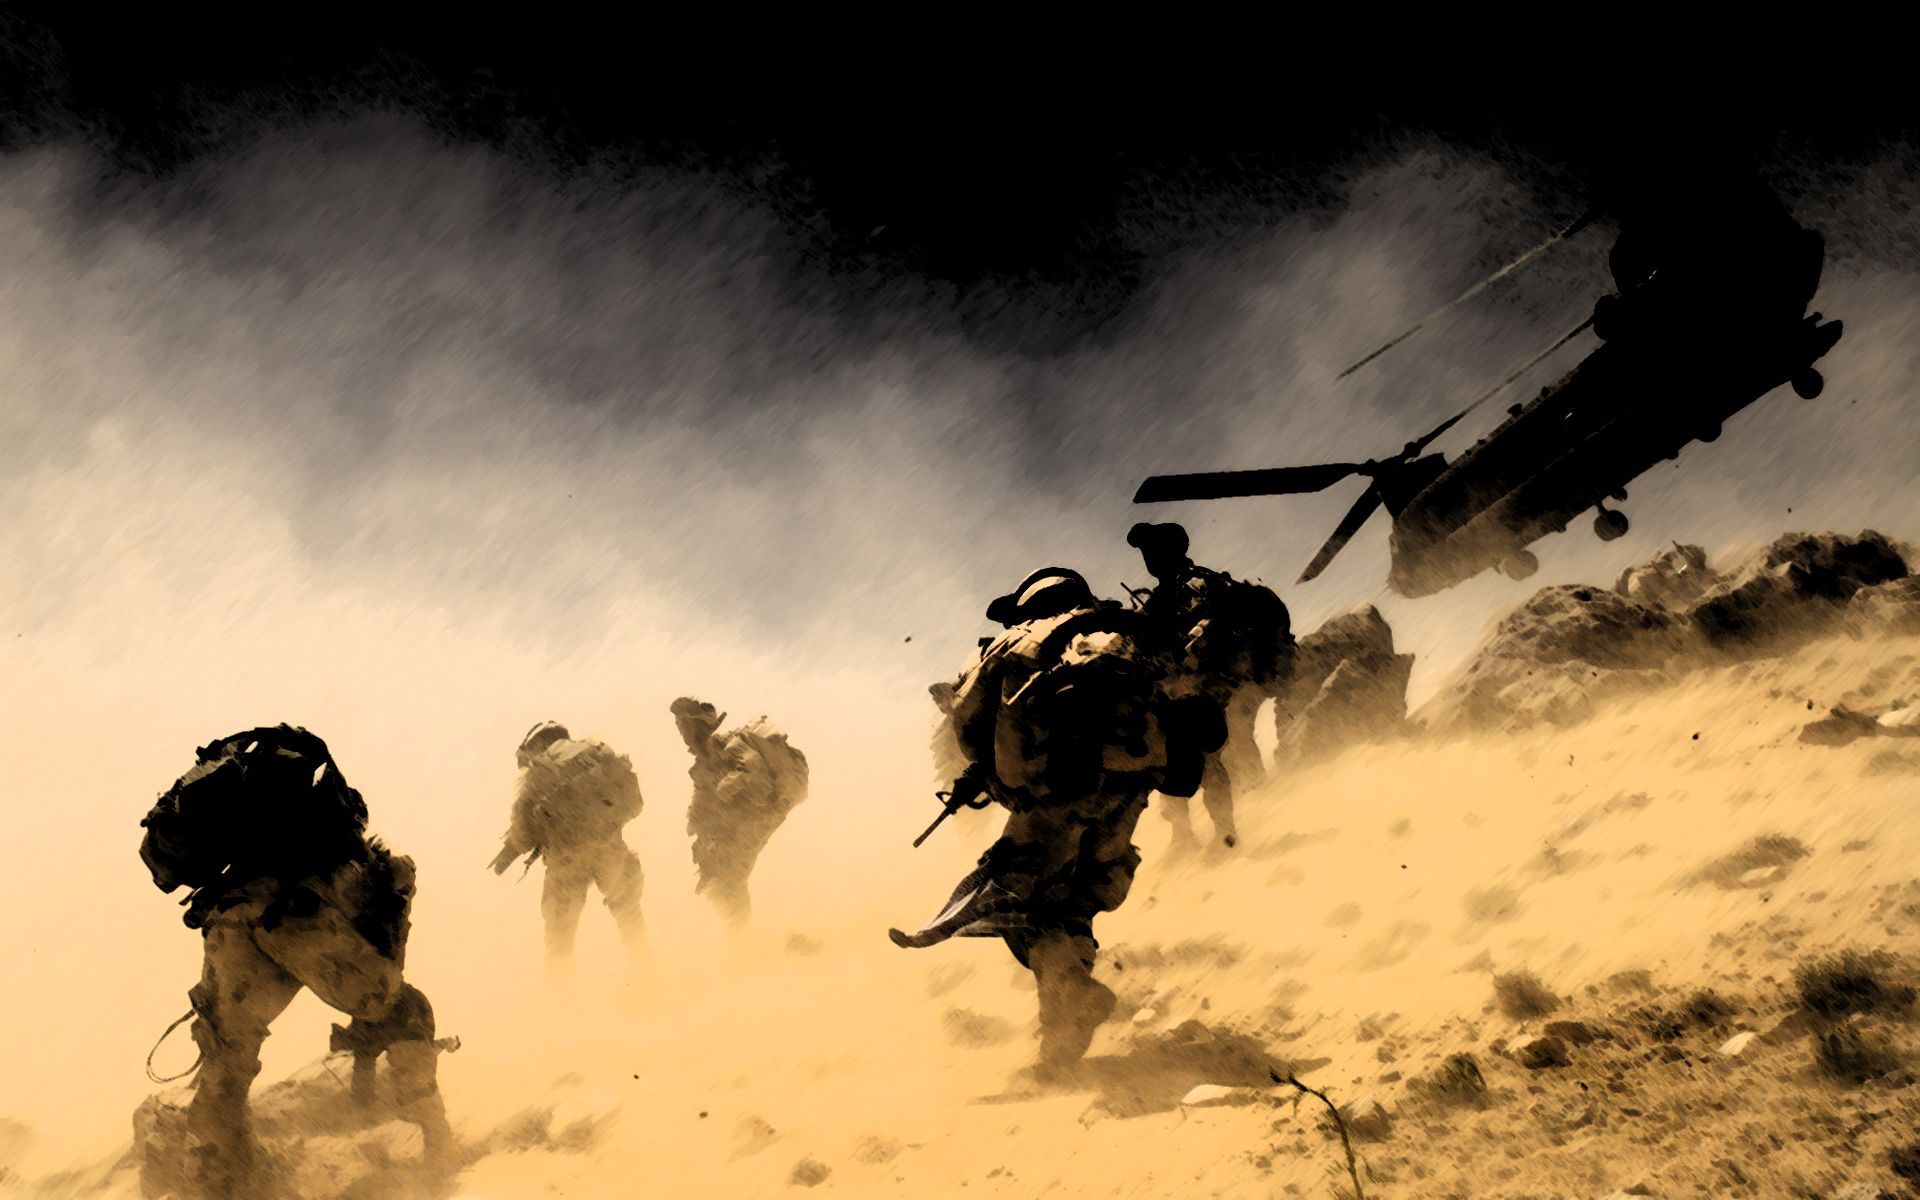 Top Warzone Background Hd Wallpapers Military Wallpaper Army Wallpaper Army Wallpaper Hd